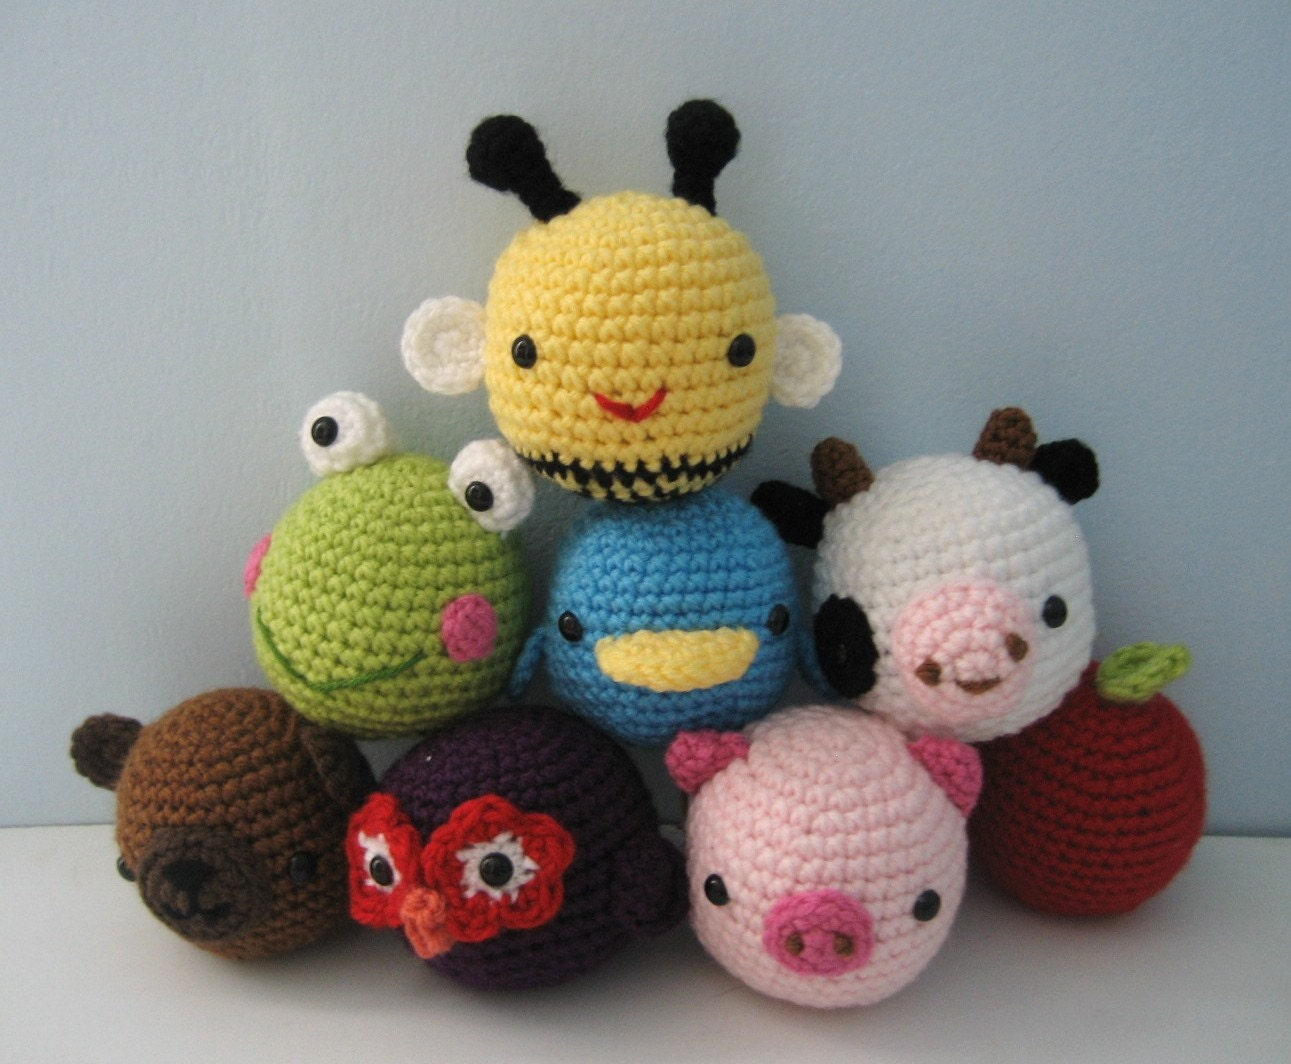 Amigurumi Crochet Animal Toys for Baby Pattern Digital Download from ...